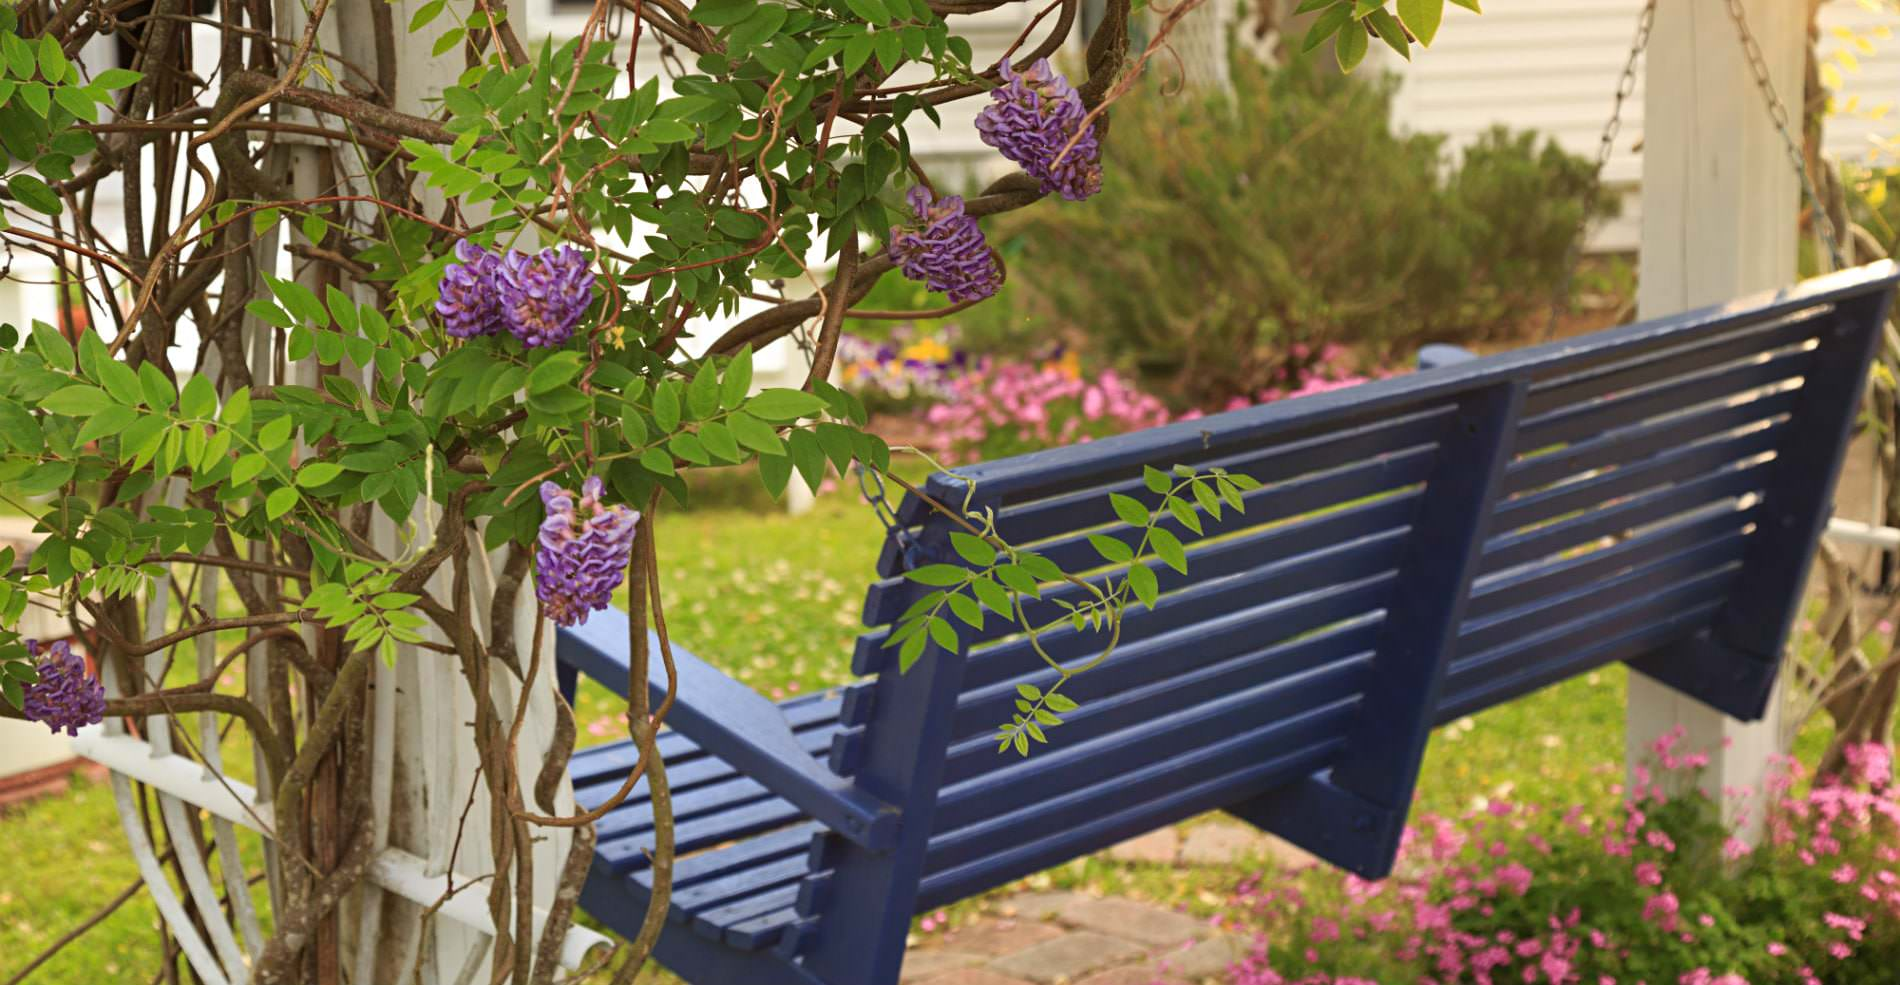 A purple porch swing, with green and purple vines growning up its wooden legs